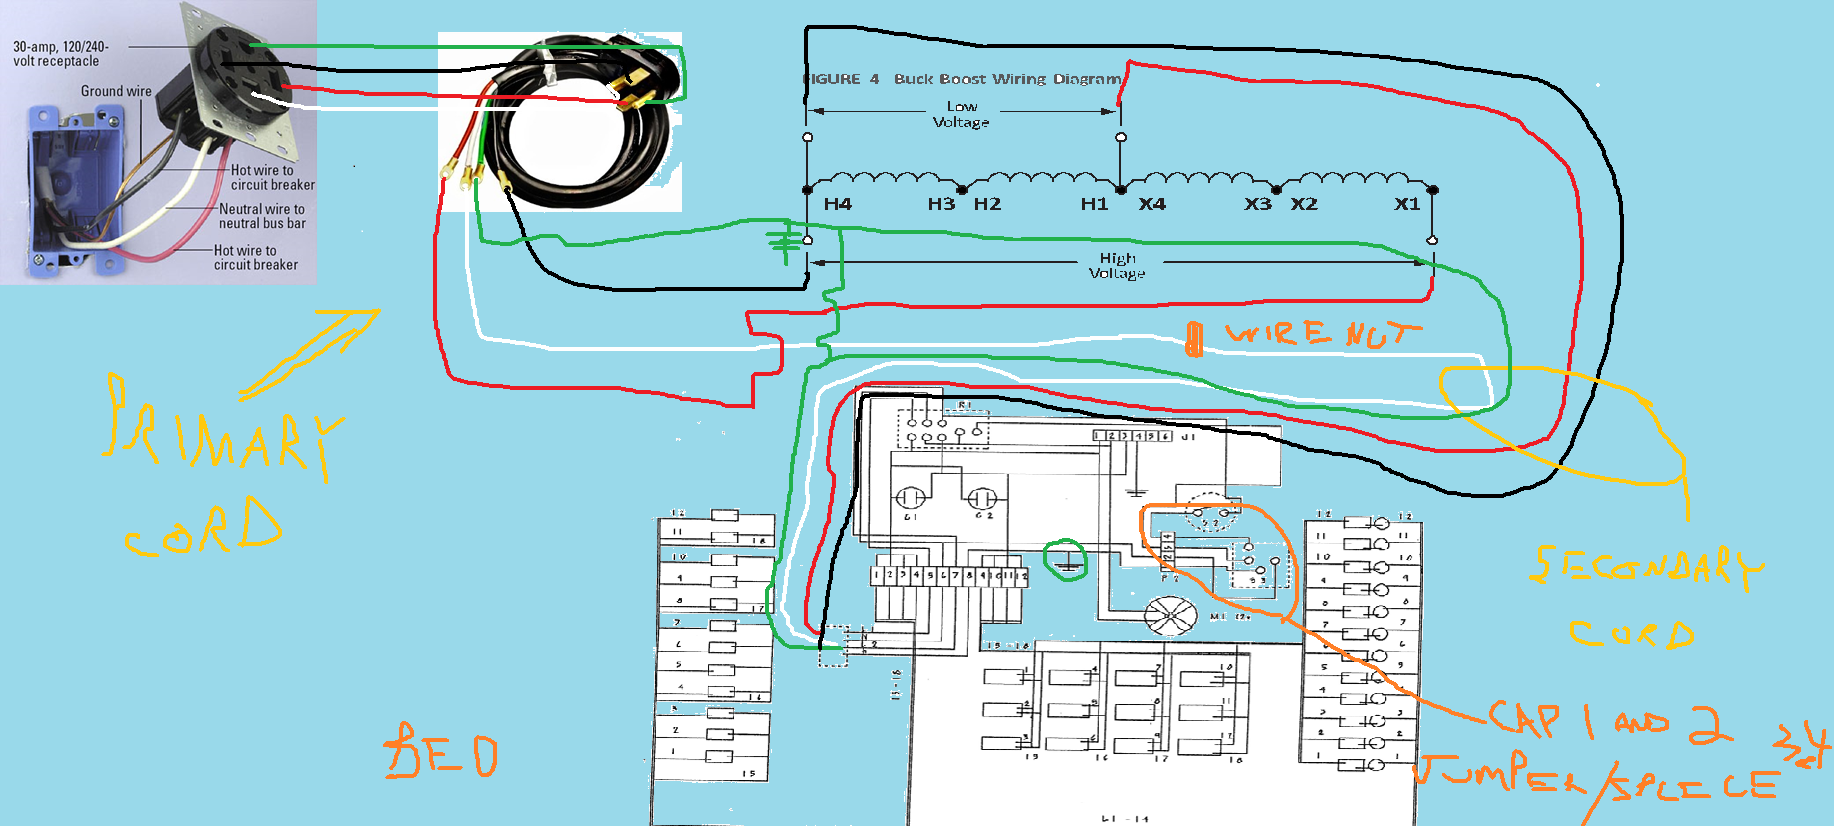 f196698f-3eb6-494a-a13d-11f208e2e4d6_rough wiring diagram for tanning bed .png